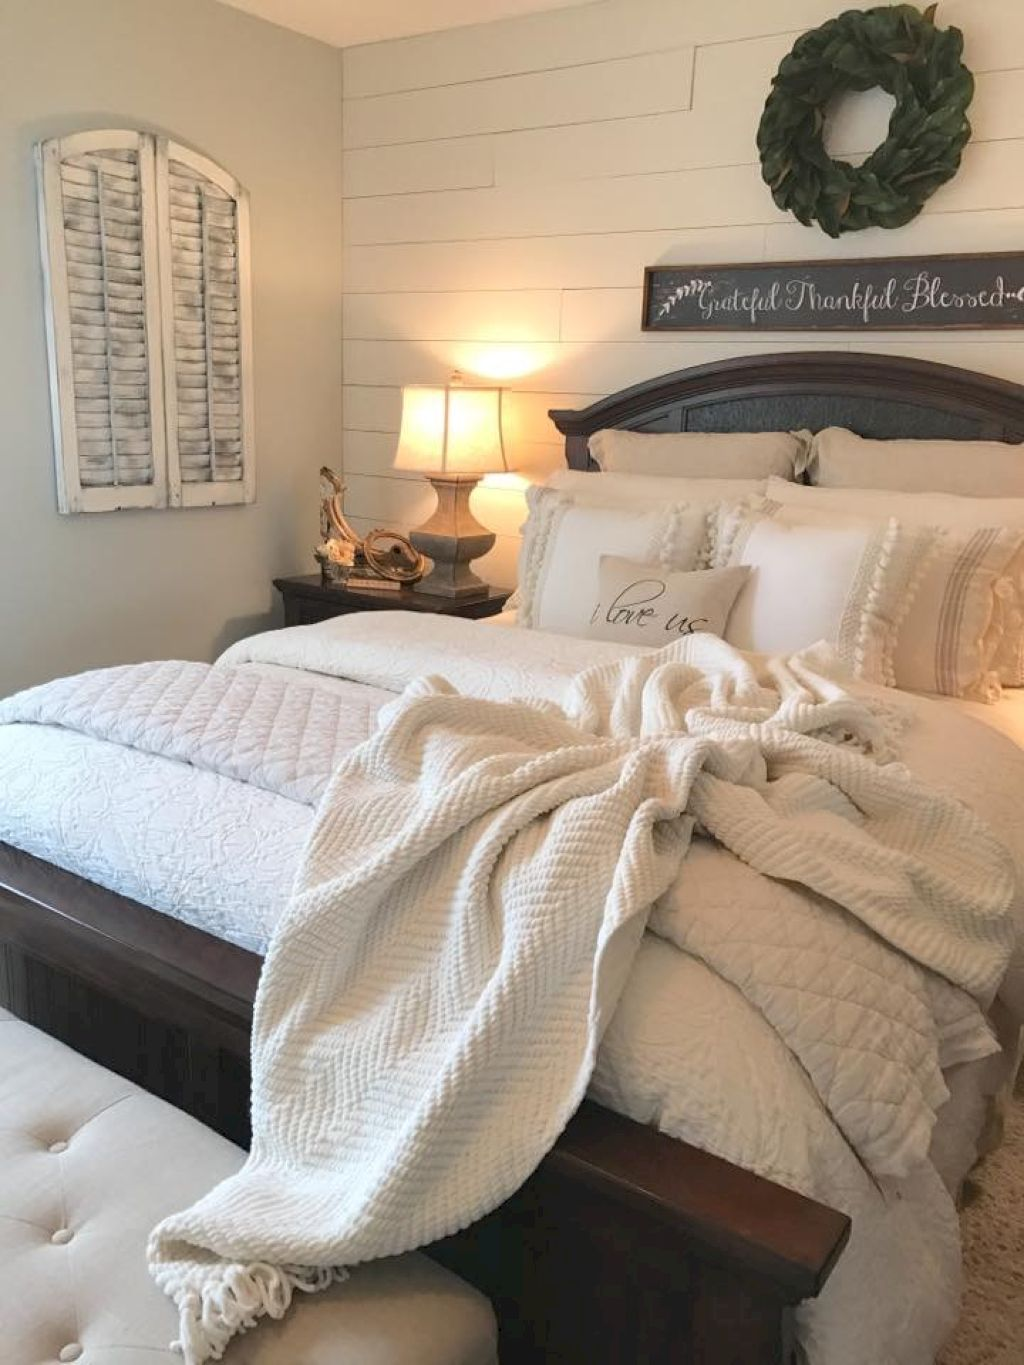 Modern contemporary master bedroom decor   Awesome Farmhouse Bedroom Decor Ideas  Bedrooms Rustic charm